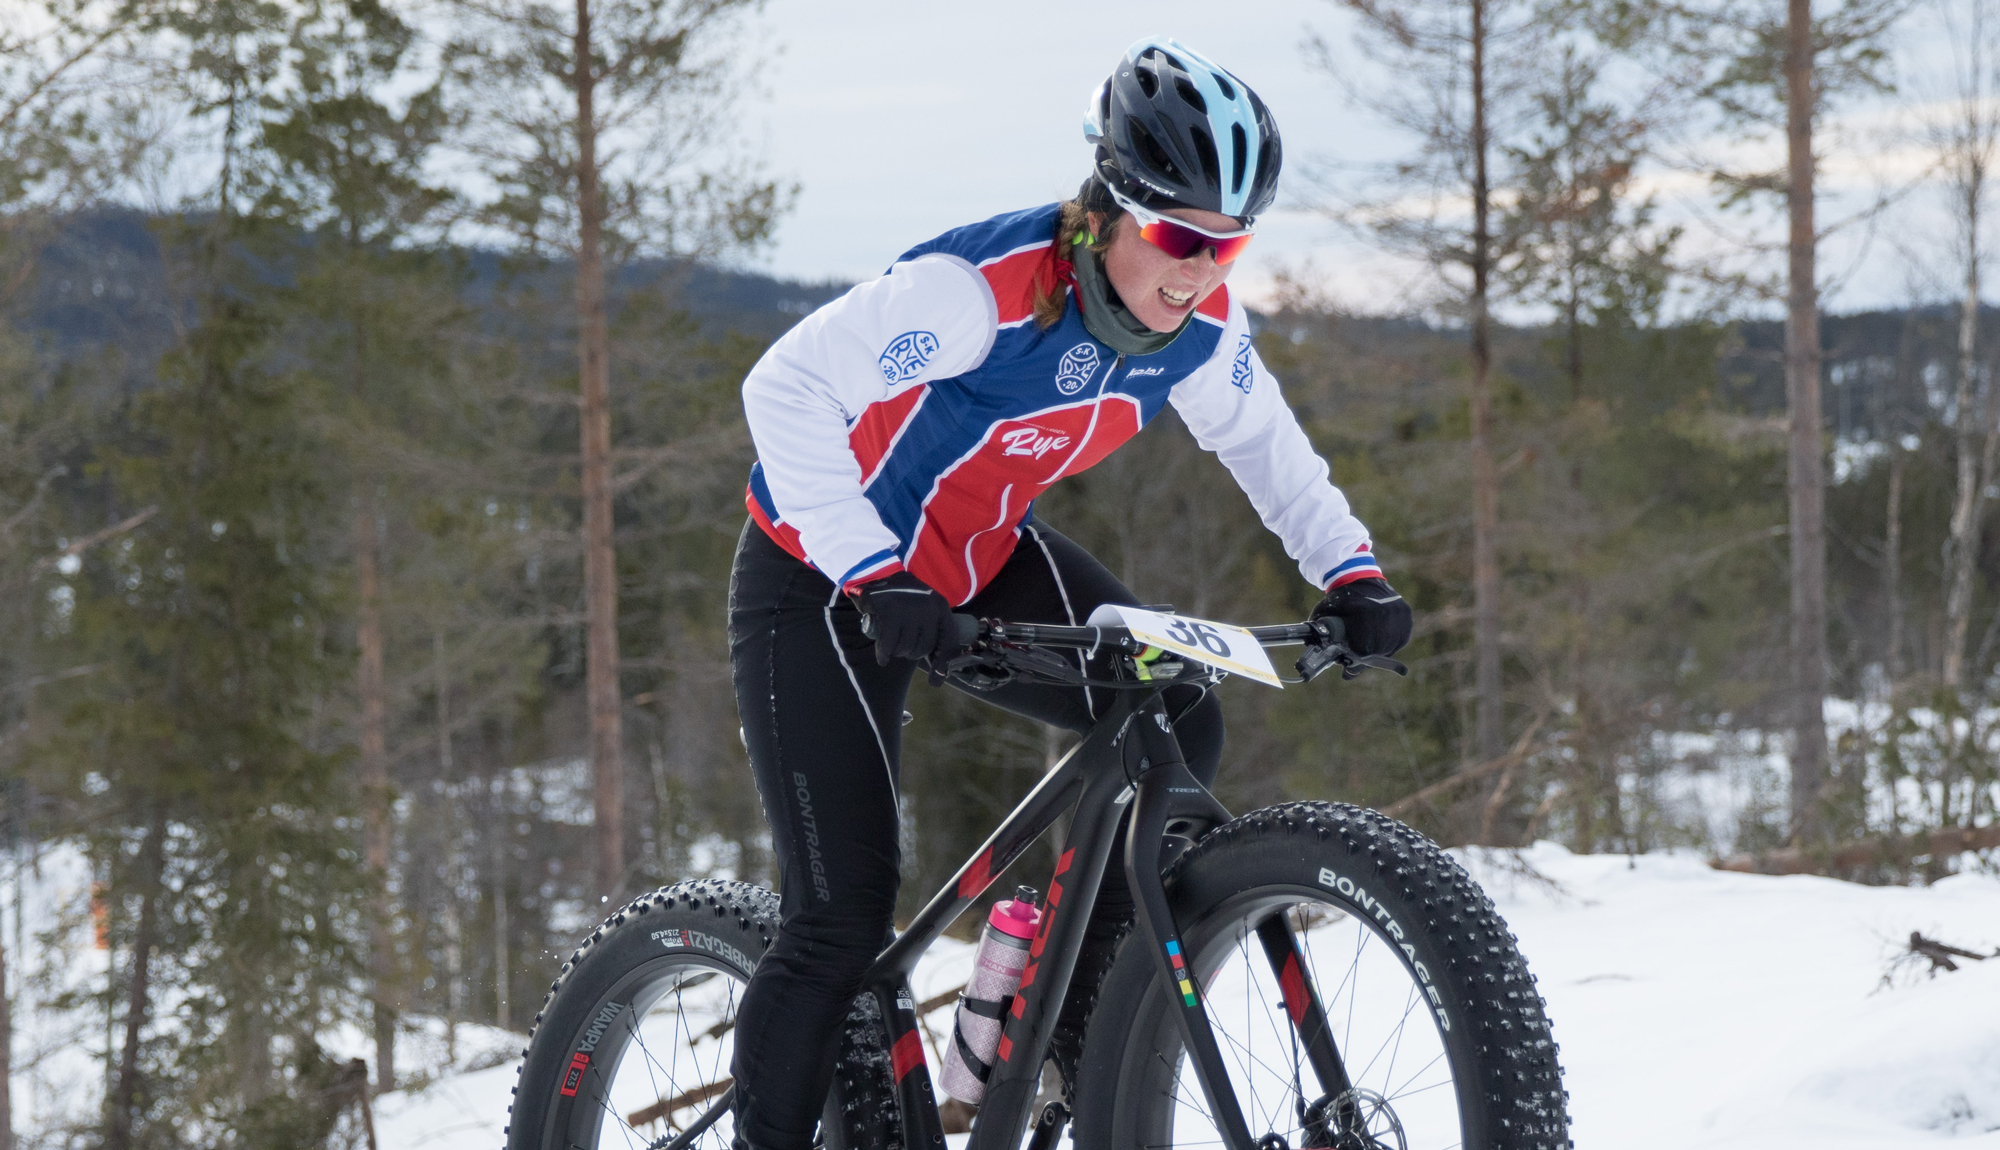 NM-GULL i Fatbike!